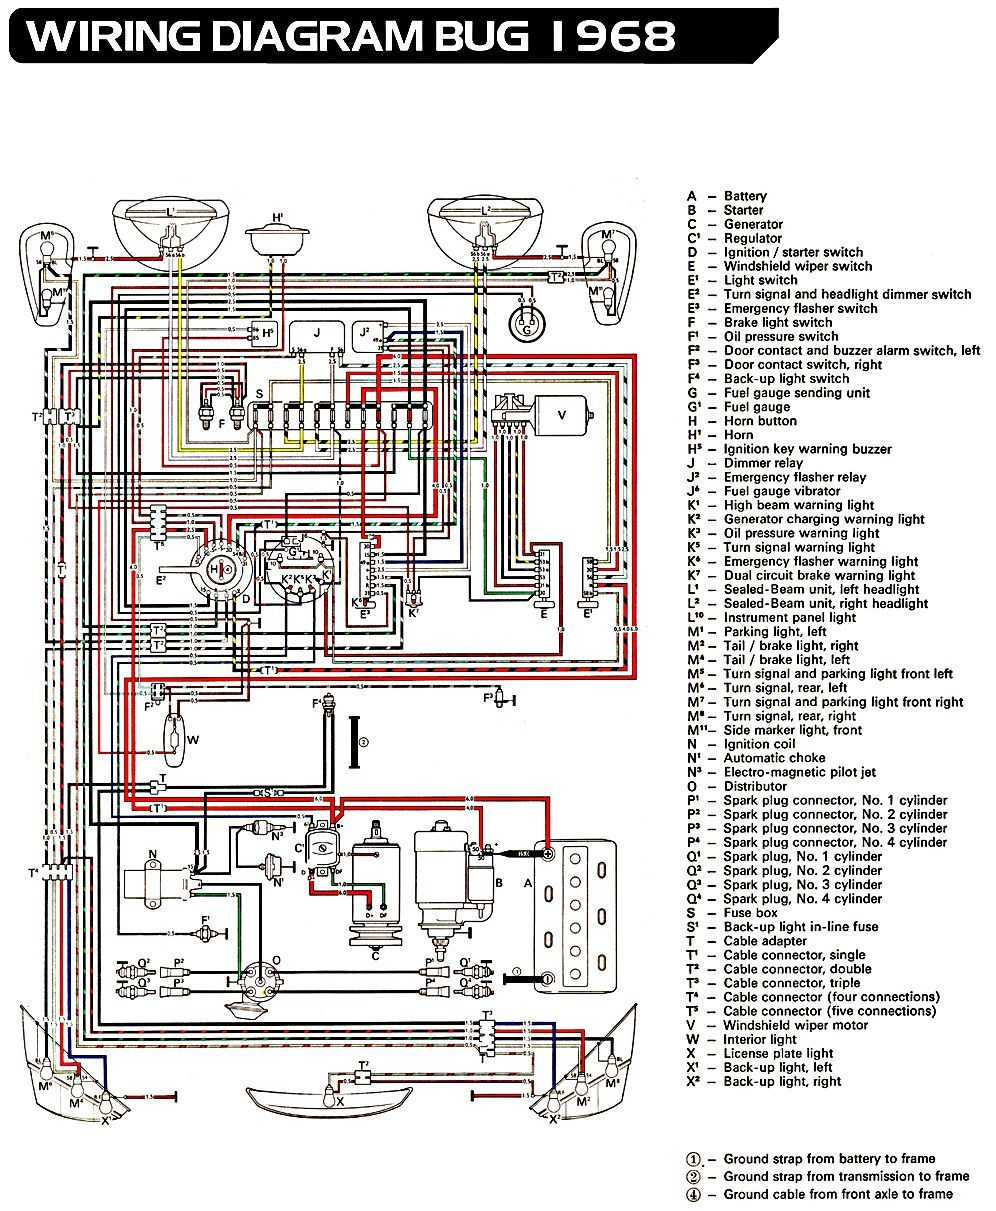 Vw Bug Ignition Wiring Diagram - 73 vw wiring diagram free ...